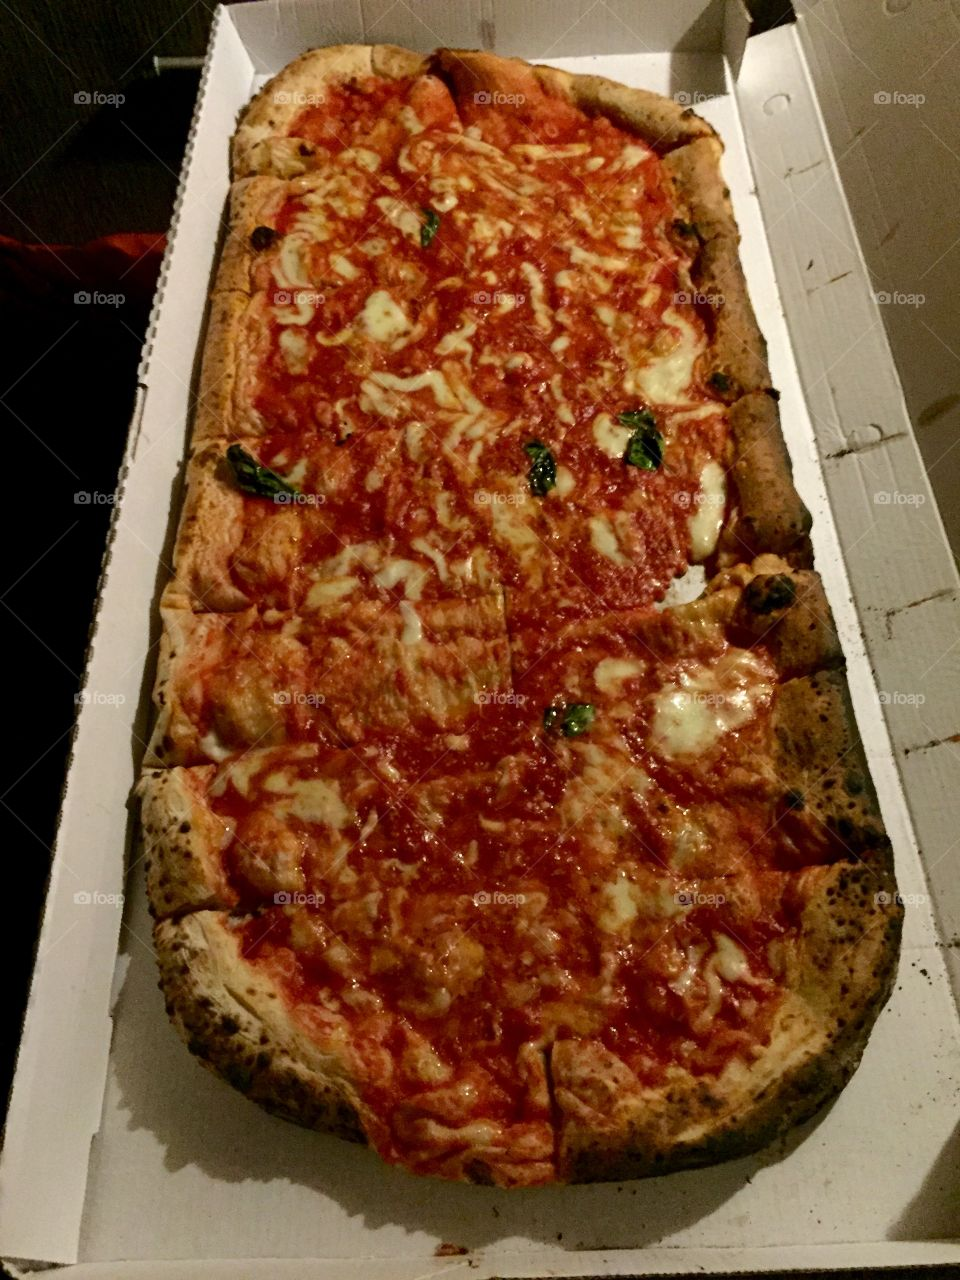 Its called 1 meter pizza, and yeah, of course its from Italy